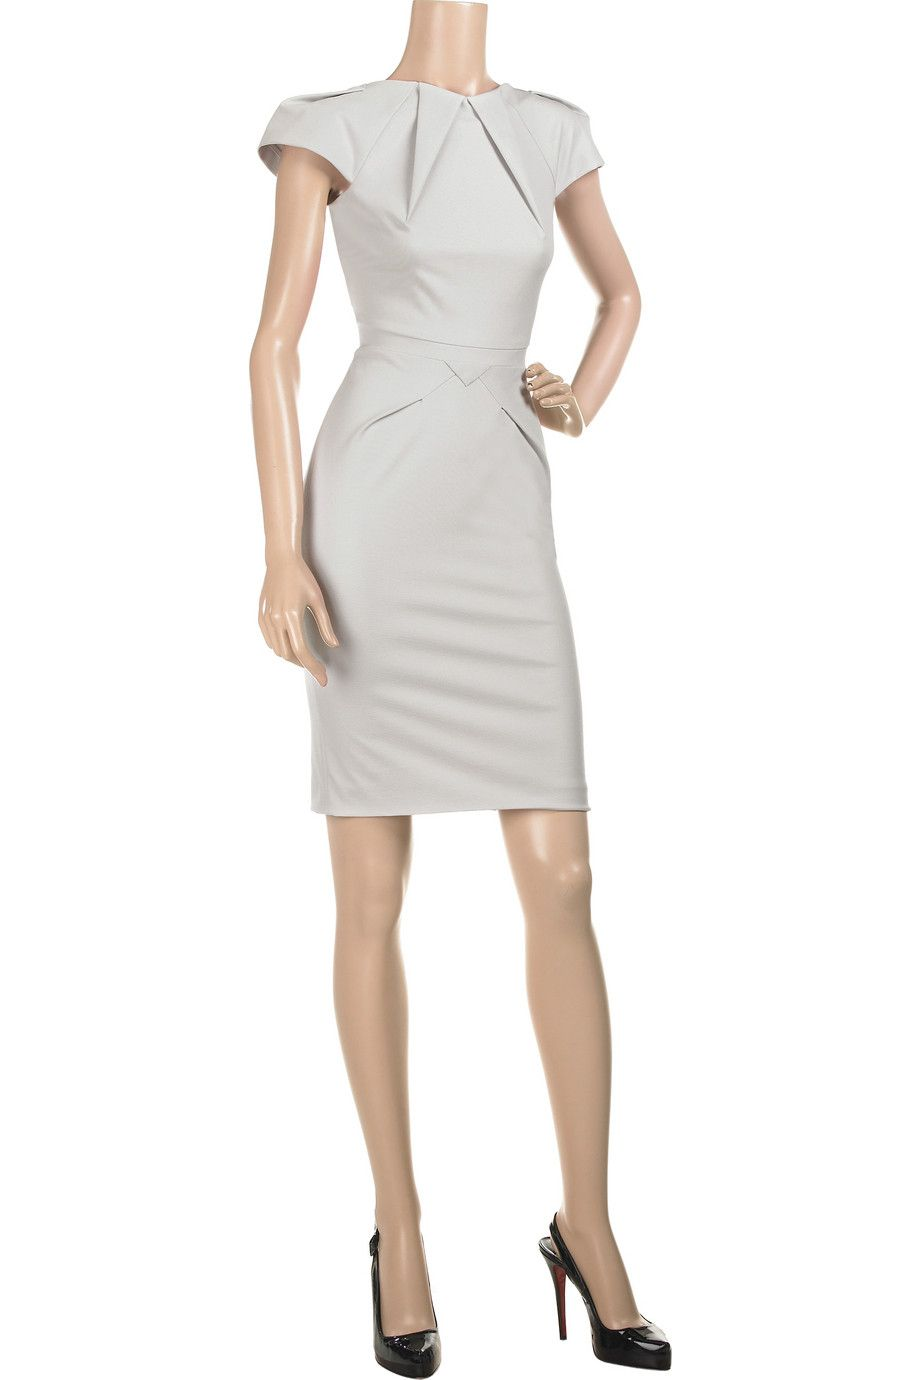 Rm By Roland Mouret Moon Tail Dress 96 Cotton 4 Elastane Dry Clean Uk 8 Dove Gray Stretch Knee Length Ed